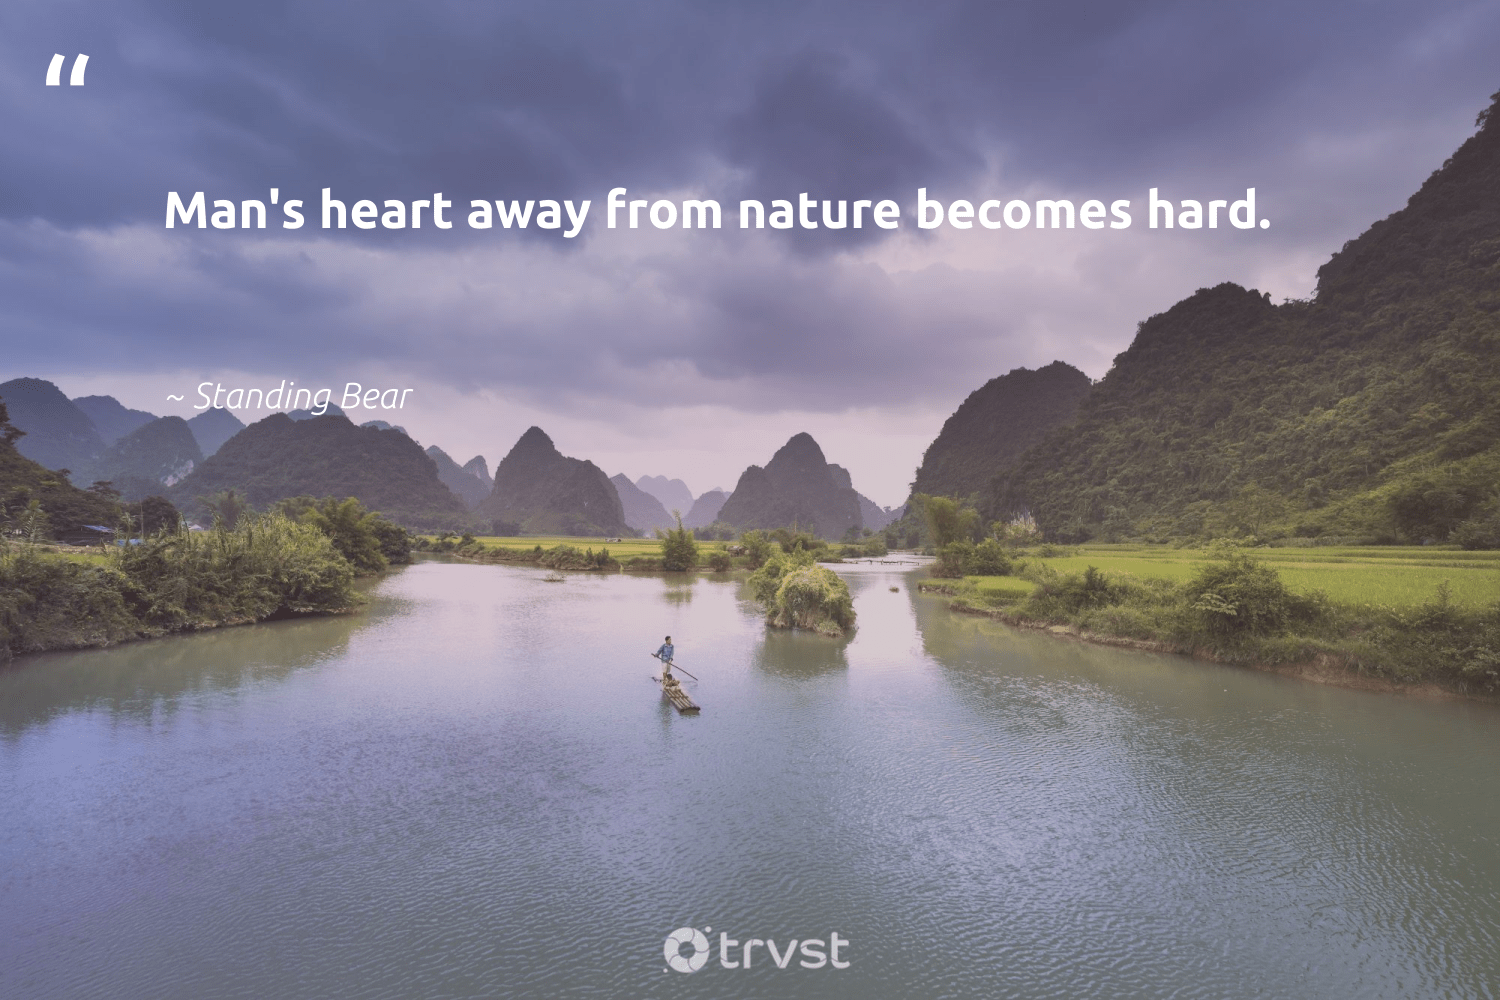 """""""Man's heart away from nature becomes hard.""""  - Standing Bear #trvst #quotes #environment #nature #climatechange #ecofriendly #takeaction #conservation #sustainable #earth #dosomething #mothernature"""